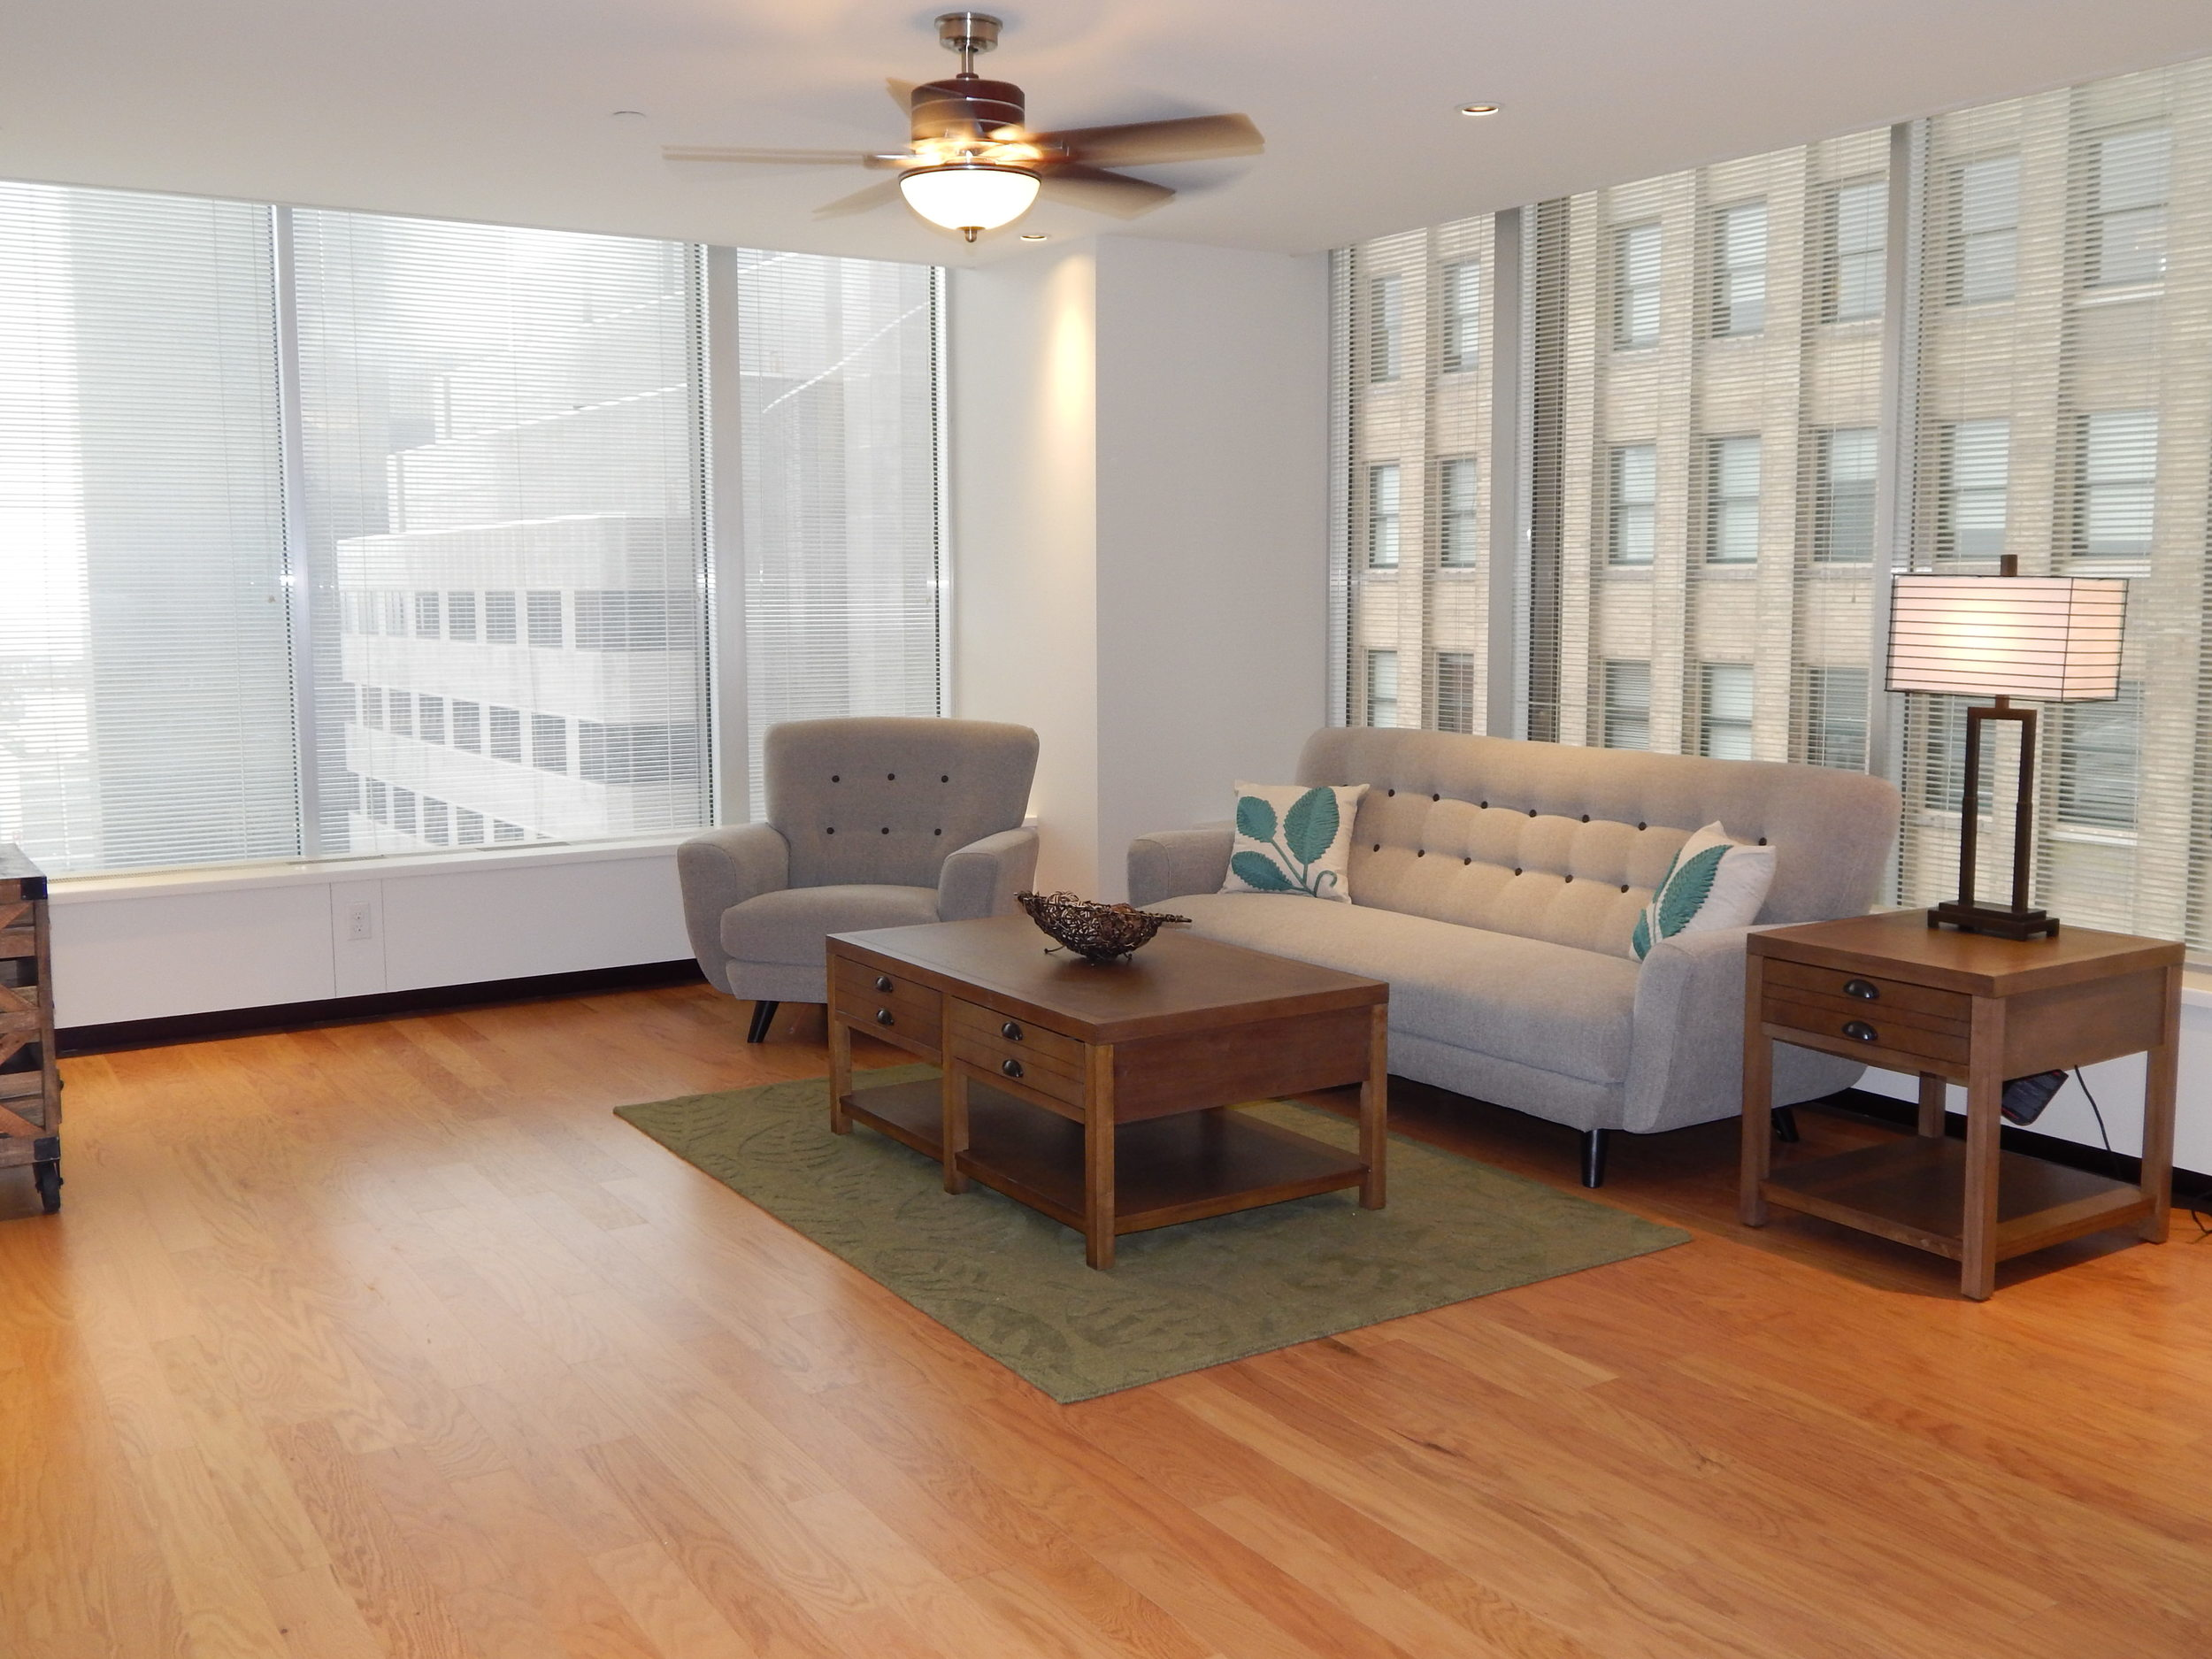 Gallery 720 Downtown St. Louis apartments for rent